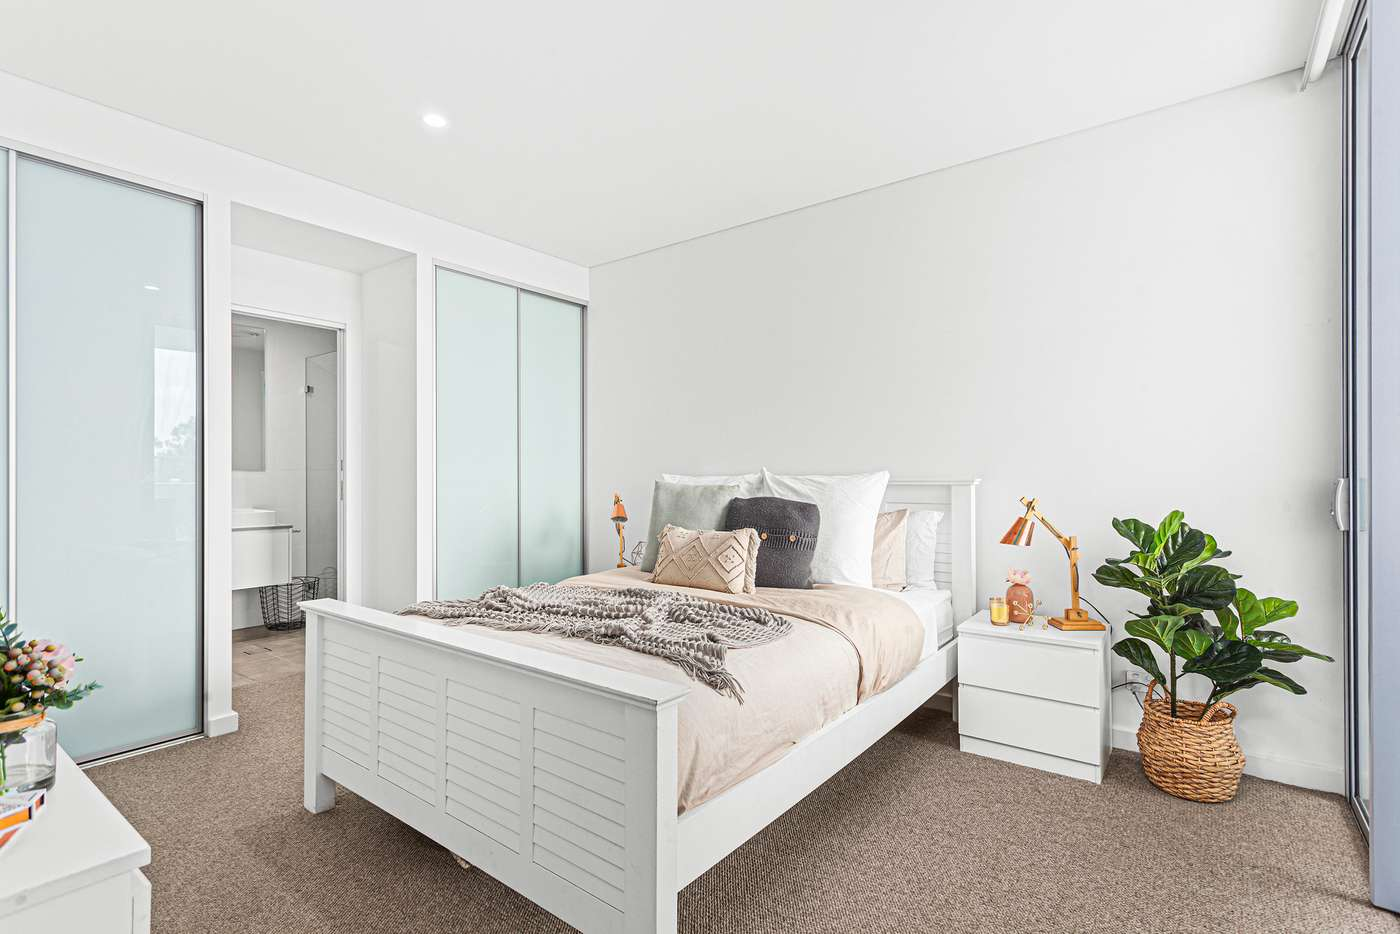 Sixth view of Homely apartment listing, A202/5 Grand Court, Fairy Meadow NSW 2519